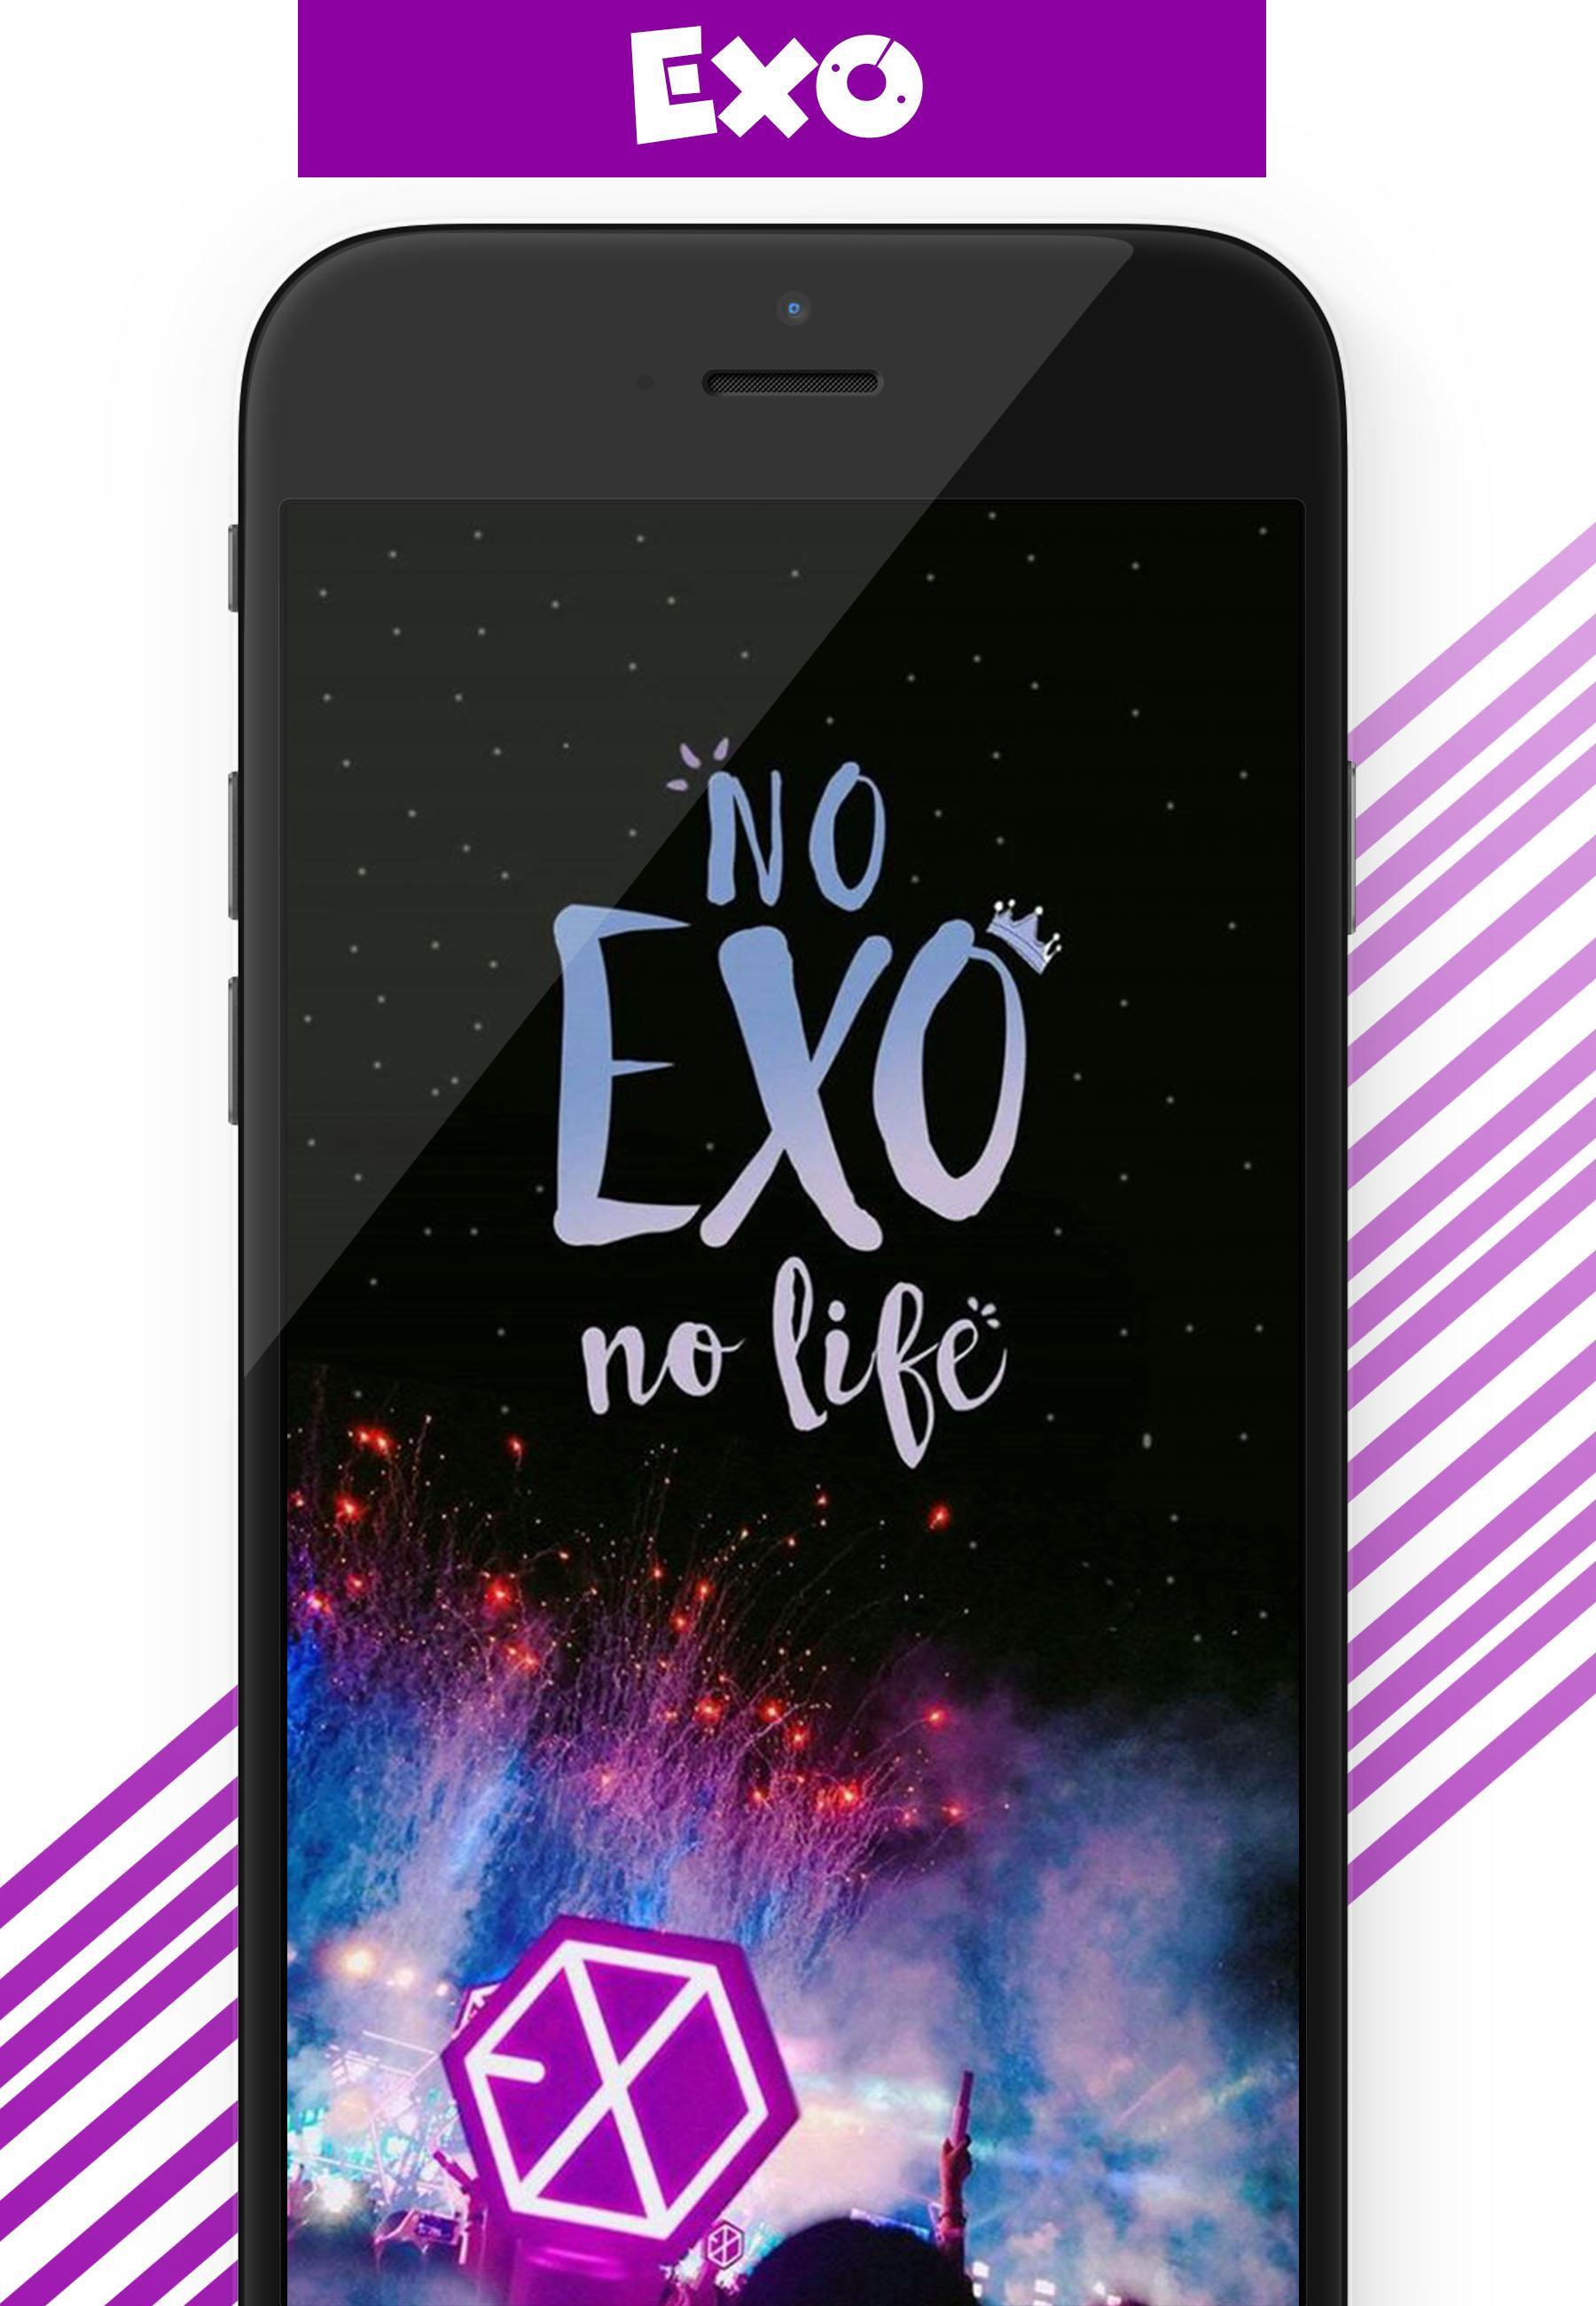 Exo Kpop Wallpaper Hd For Android Apk Download